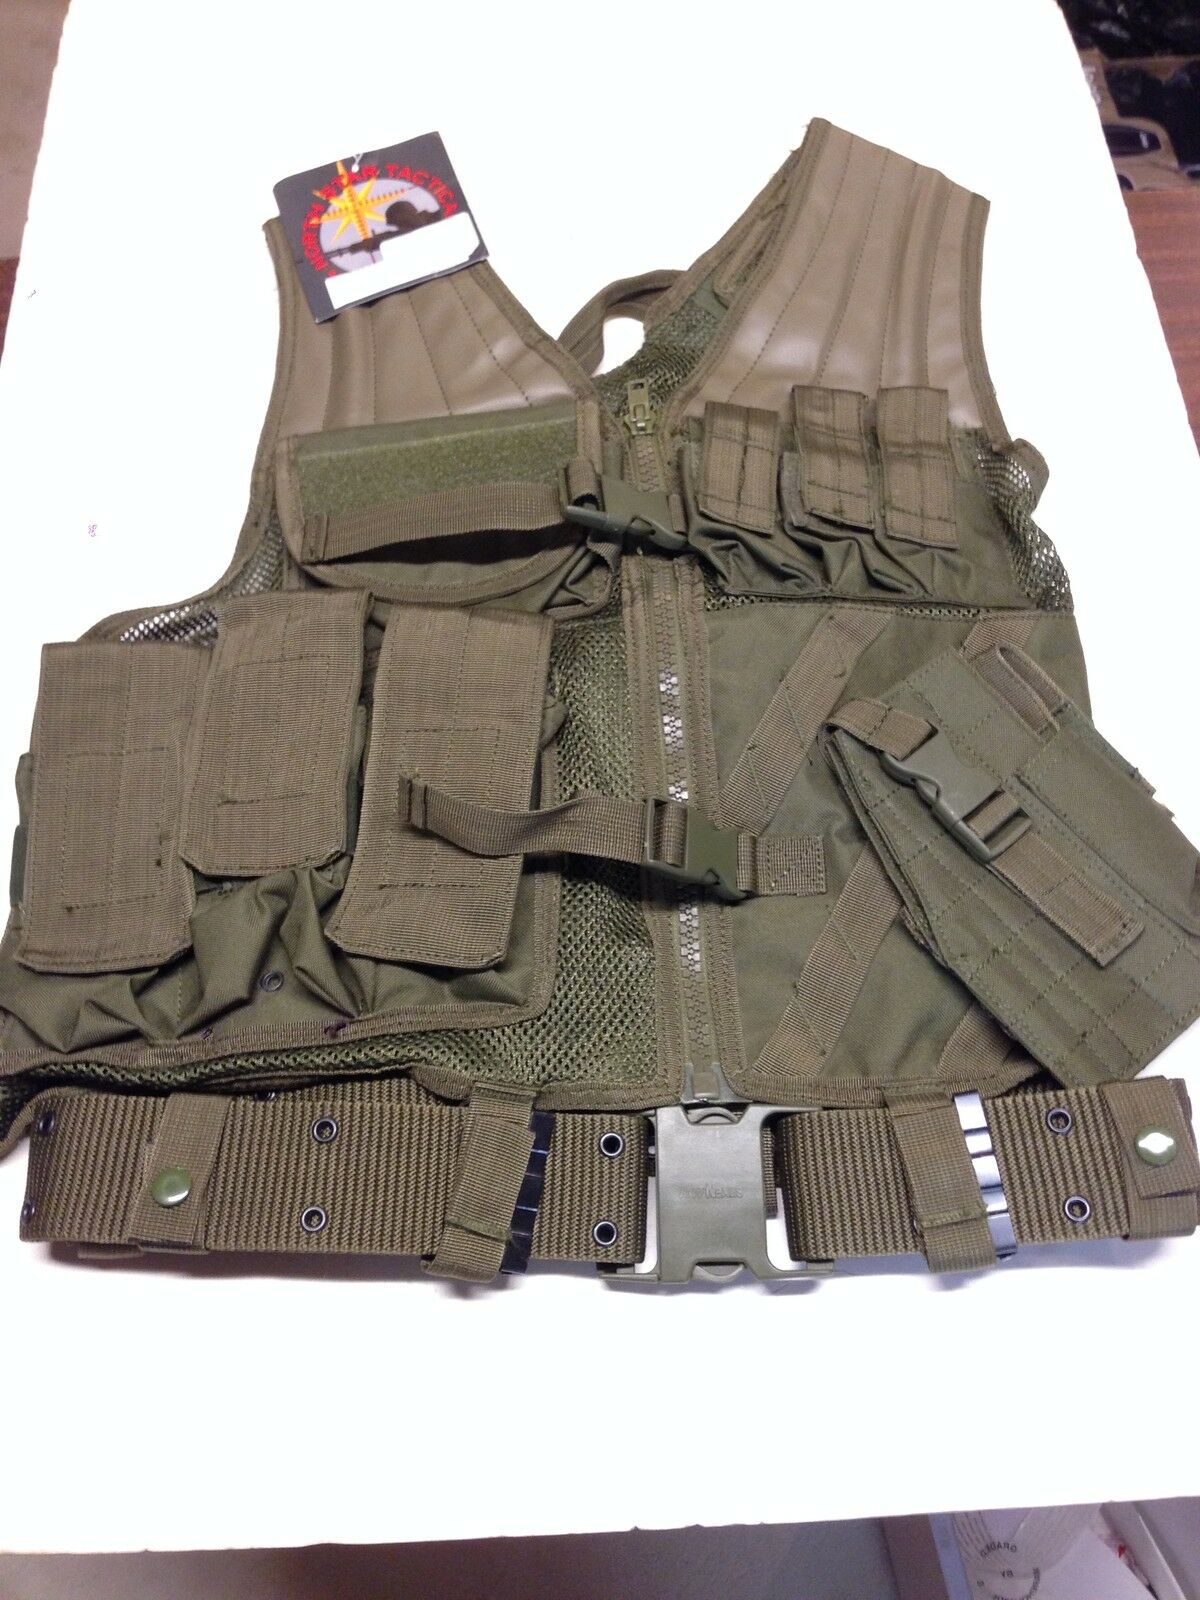 Northstar, Tactical  Storm Vest (Olive Drab)  very popular